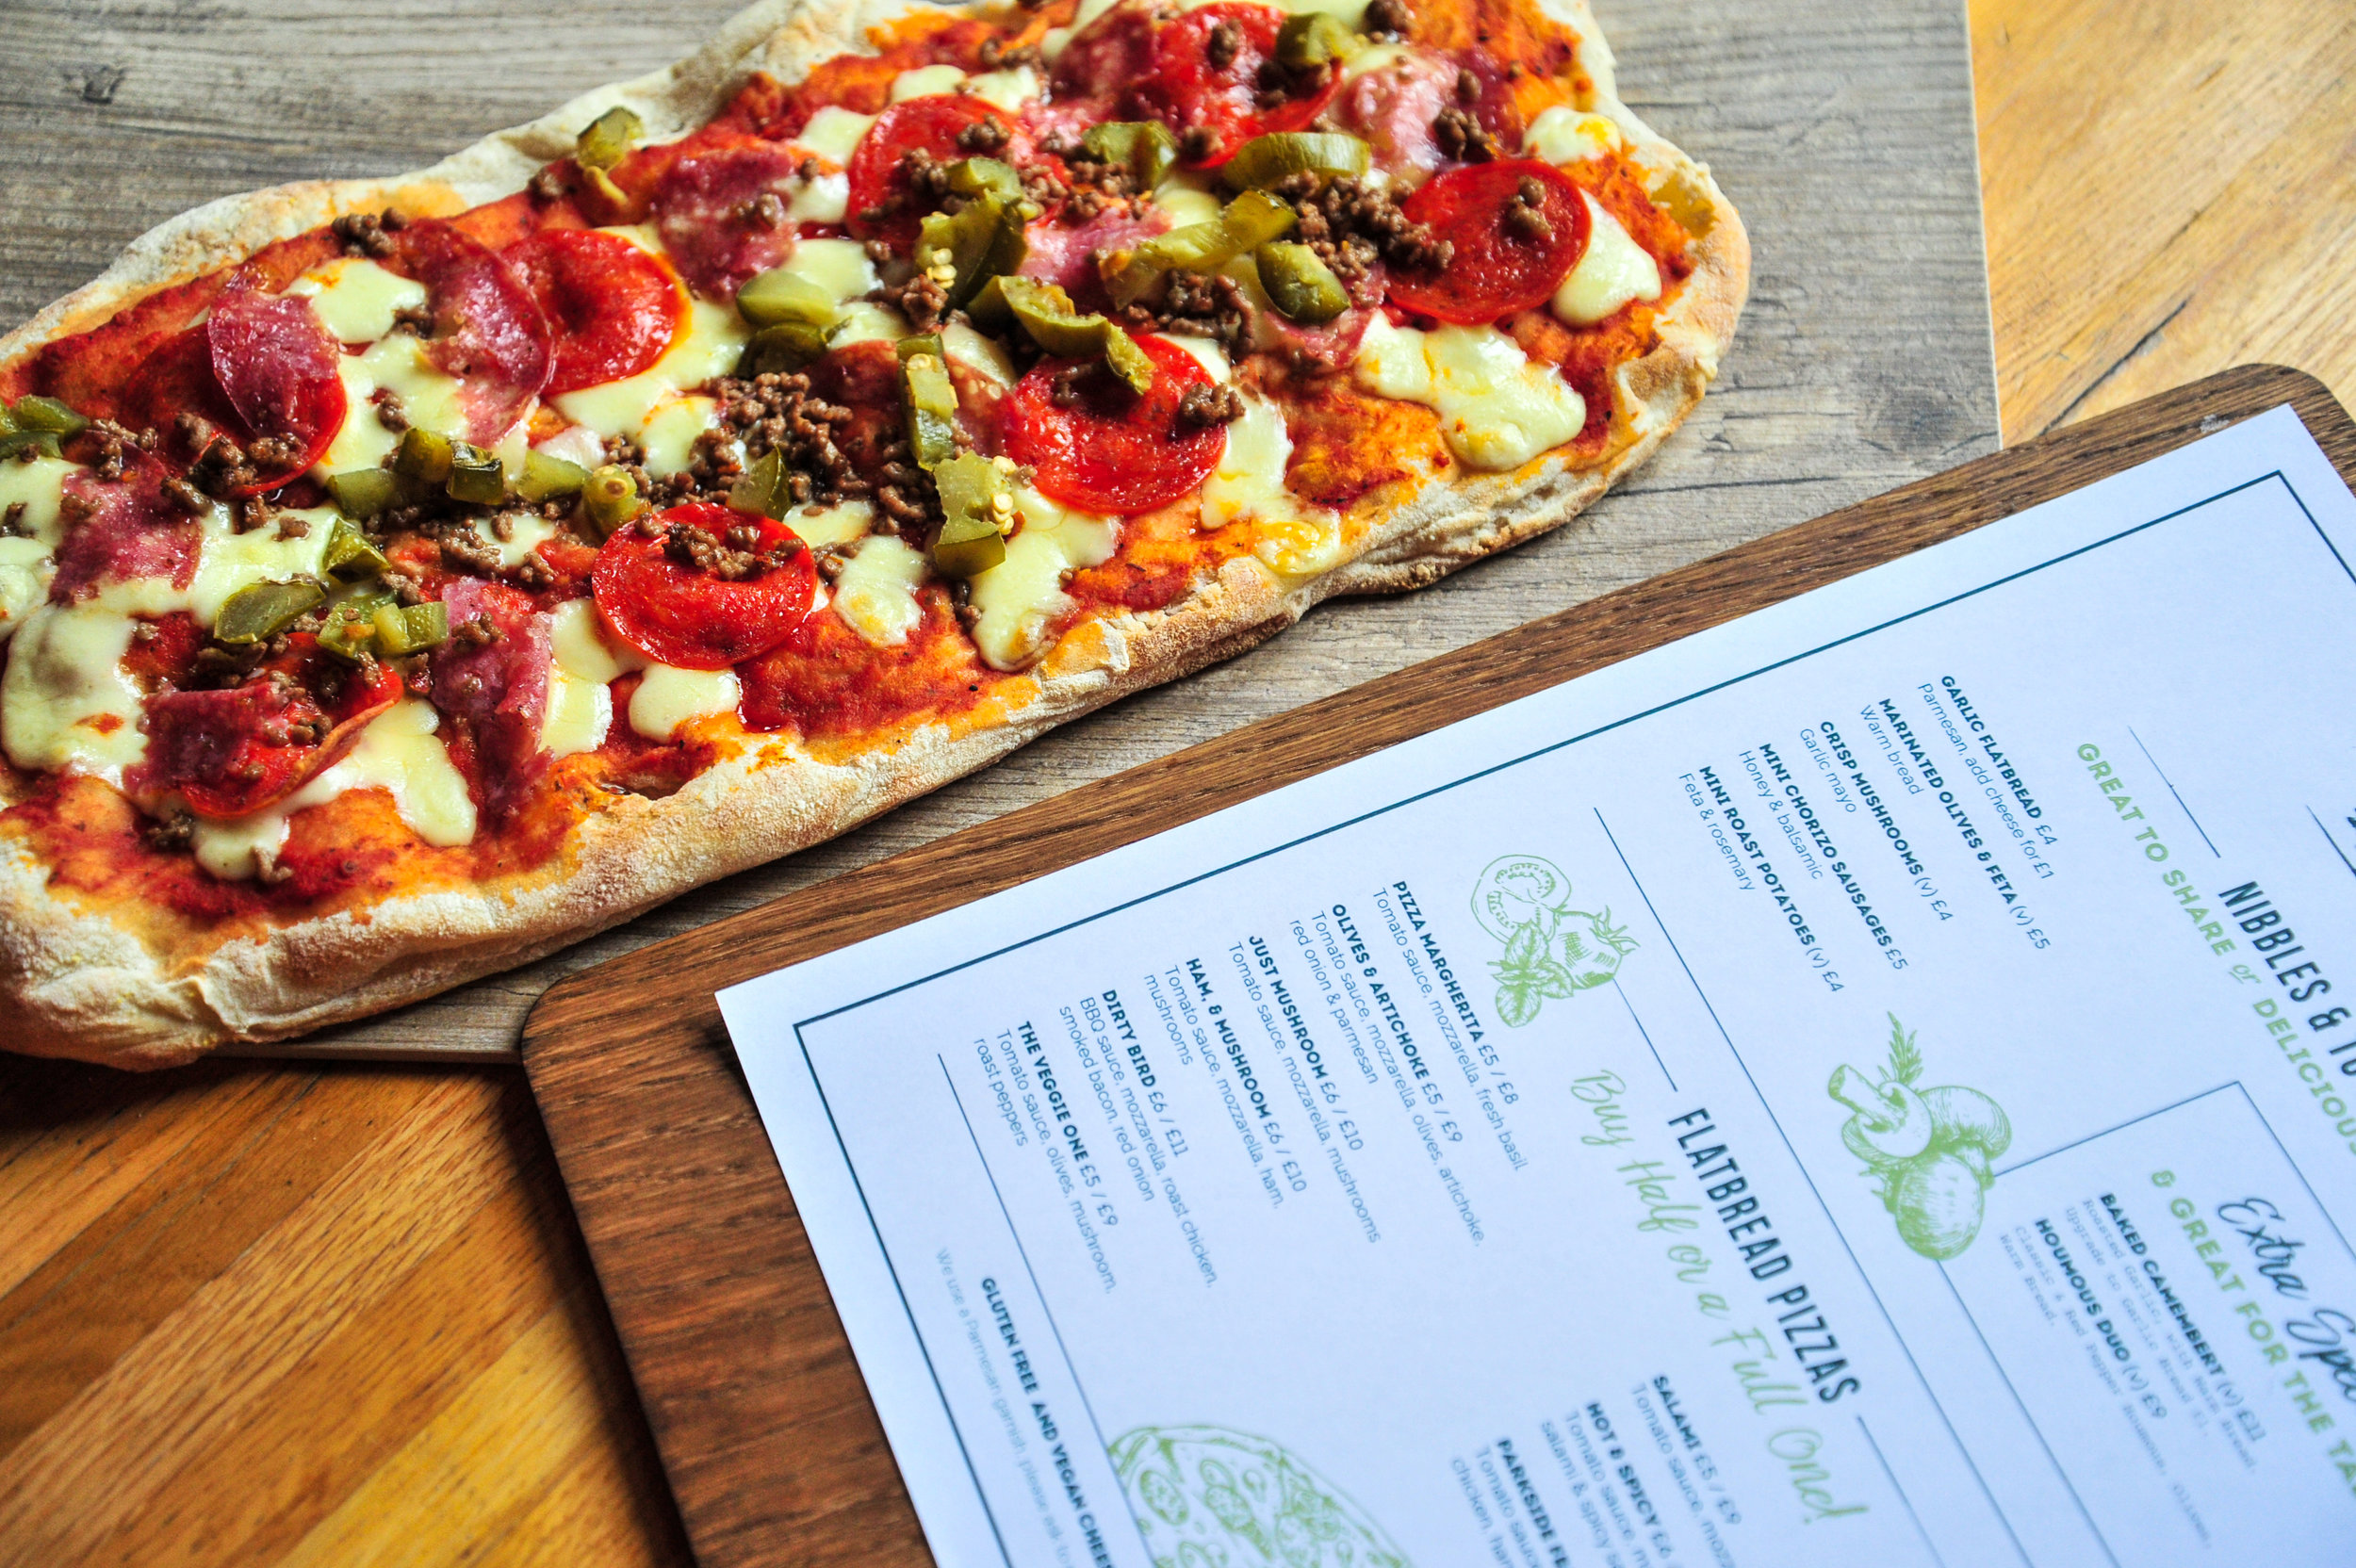 Food Menu - Introducing flatbread pizzas, sharers and nibblesTake a look at our menu below